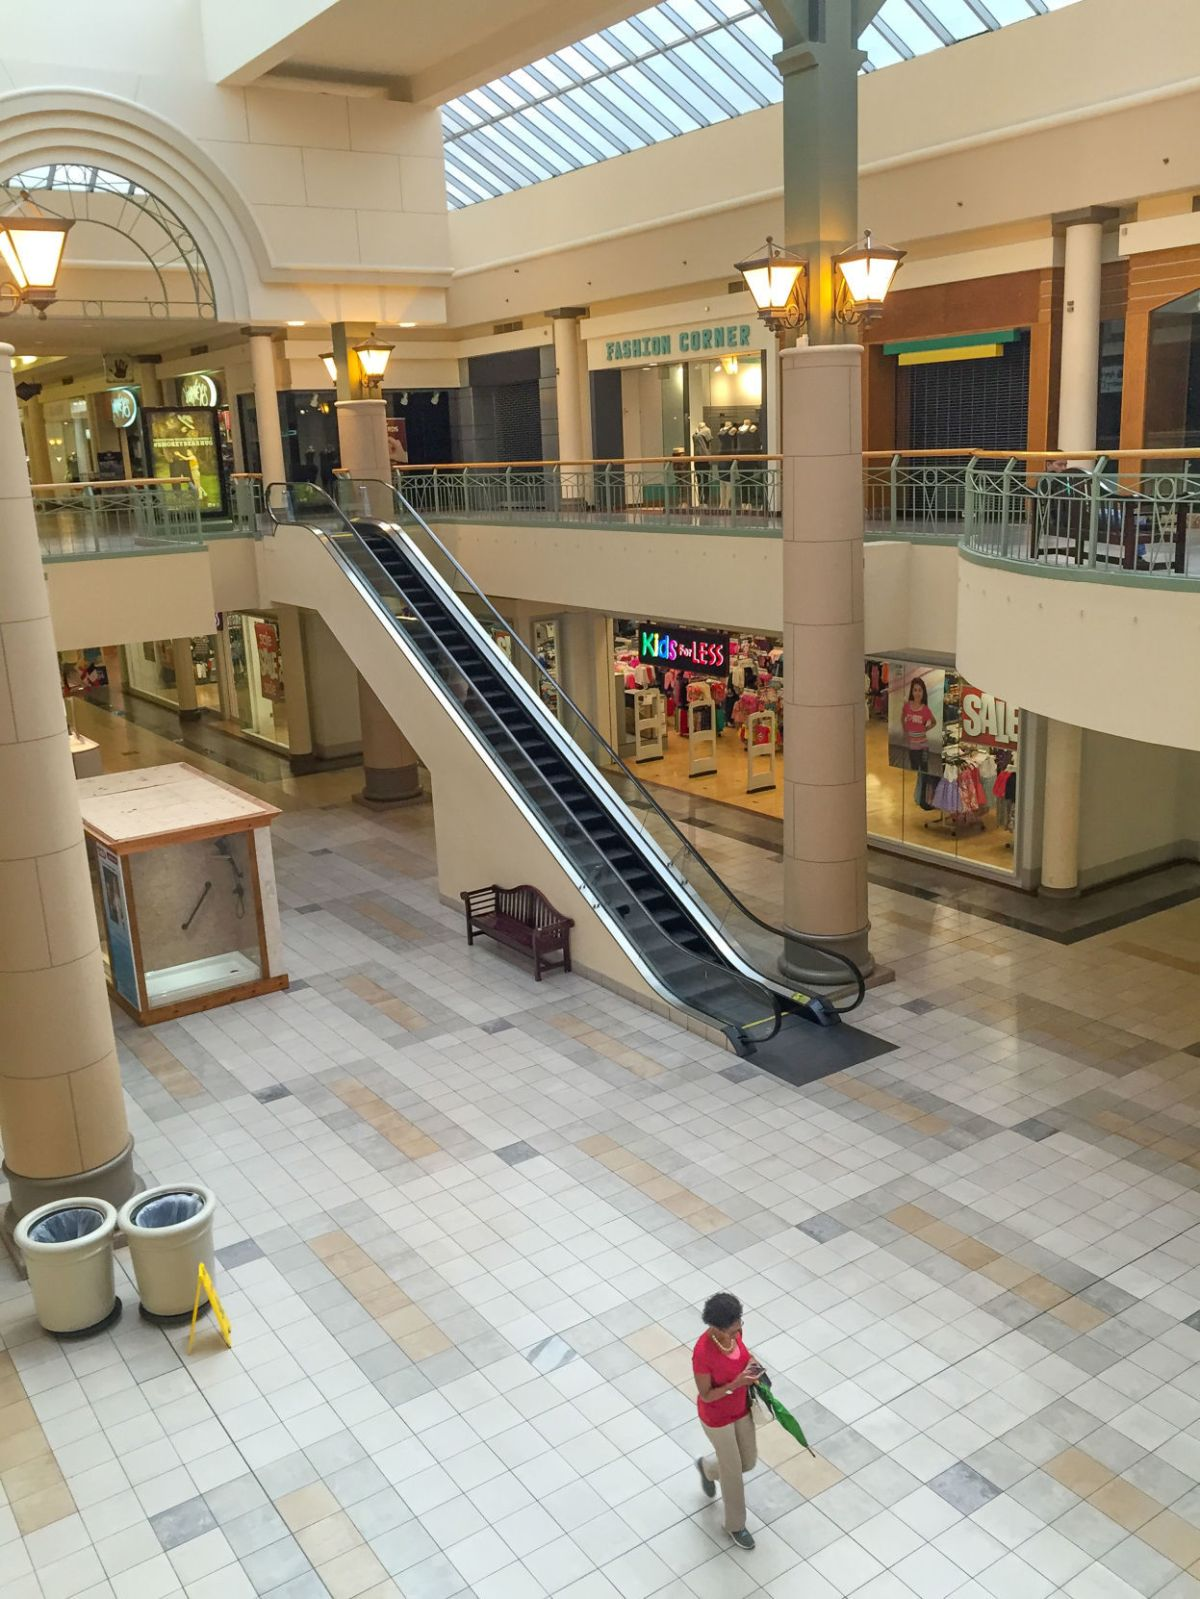 Jackson Ms Mall : jackson, Kenner's, Esplanade, Officially, Sells, Price, Records, Business, Nola.com